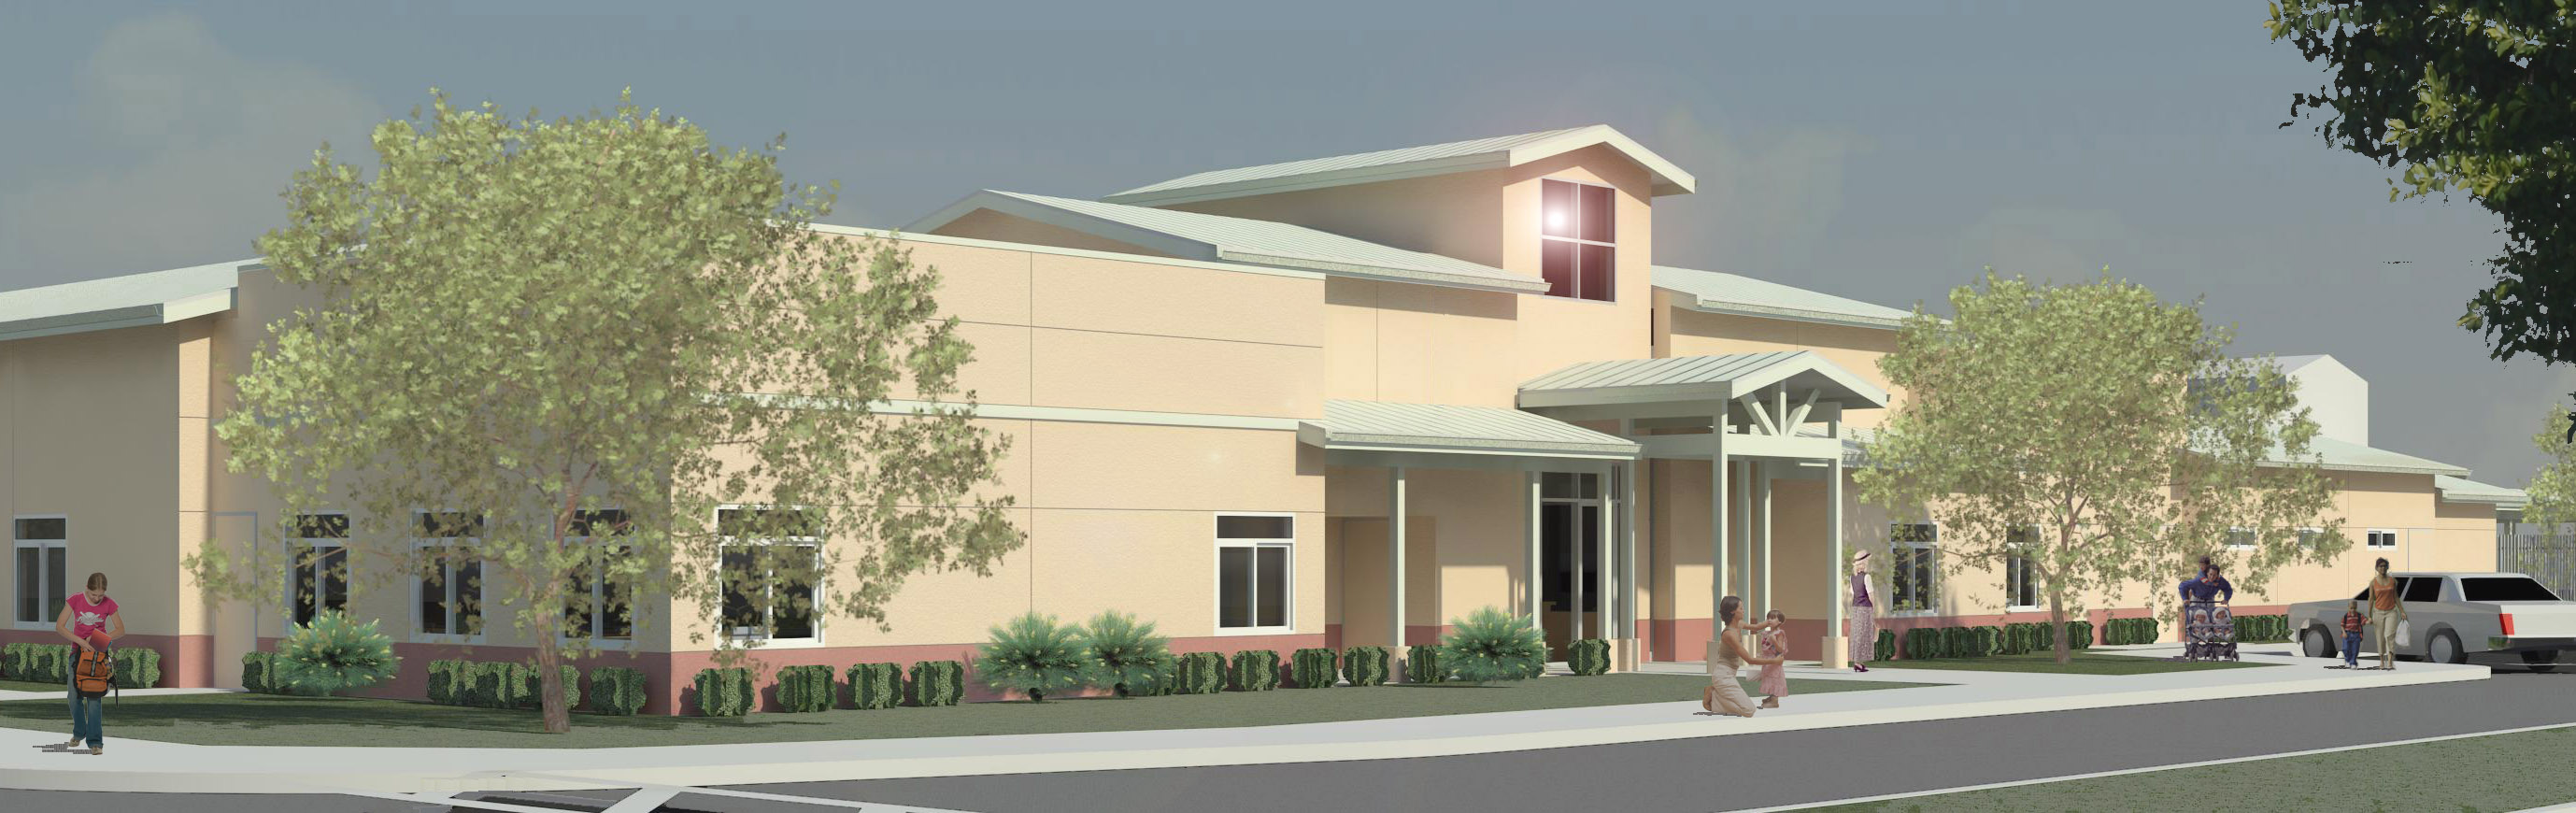 Children's Center Rendering